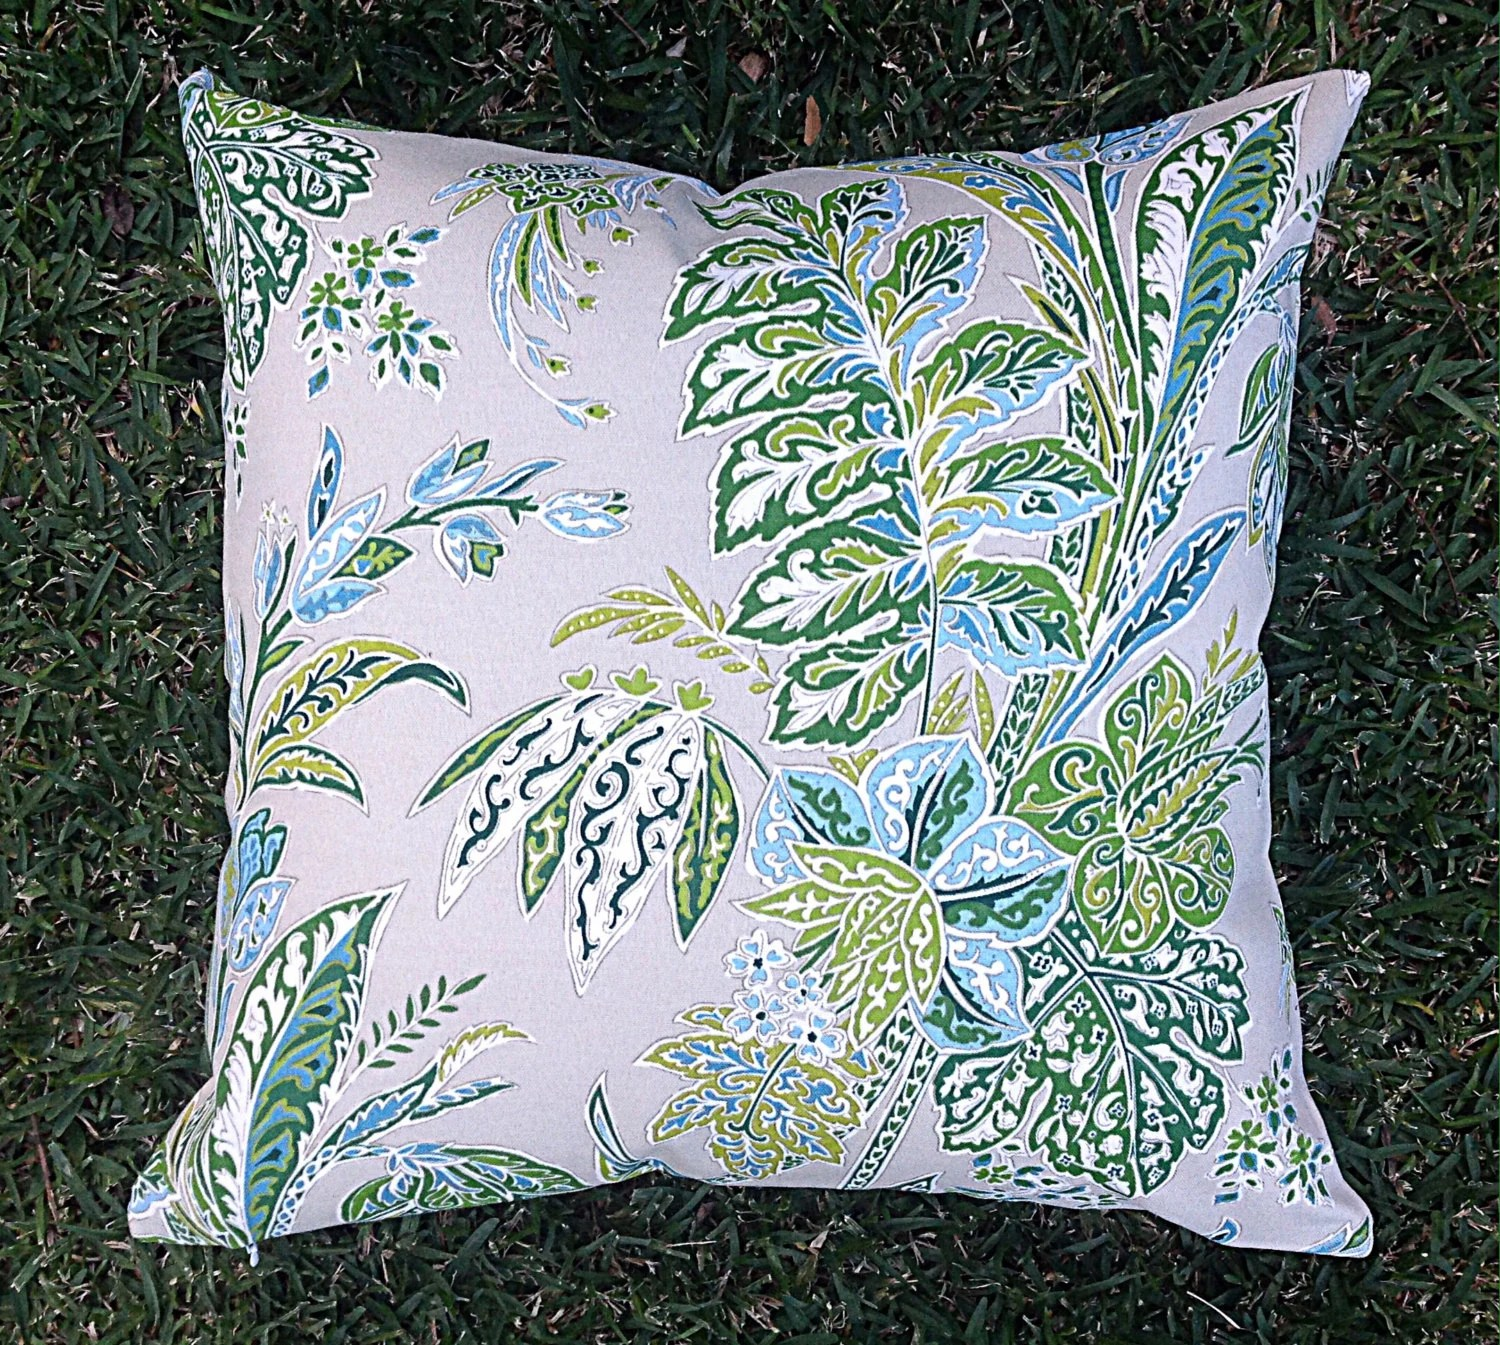 Boho Cushions Australia Floral Green Outdoor Cushions Outdoor Pillows Tropical Boho